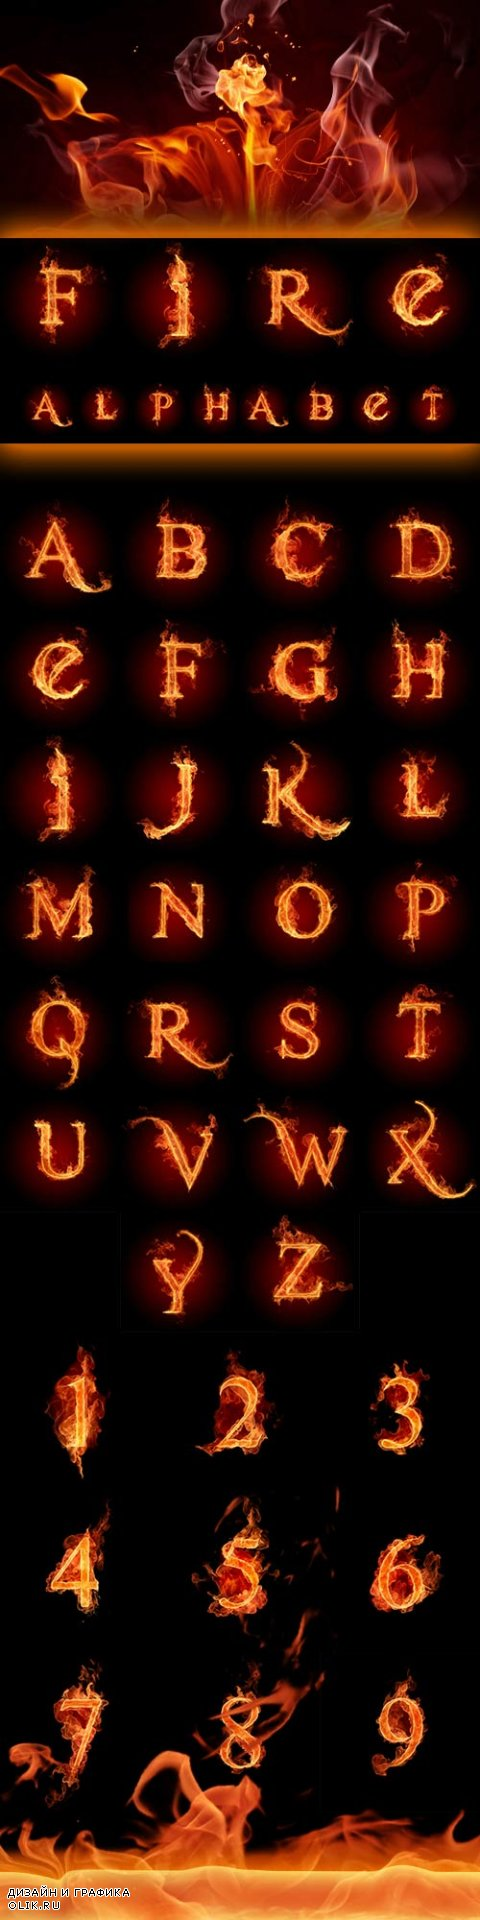 The alphabet of fire JPEG + PSD